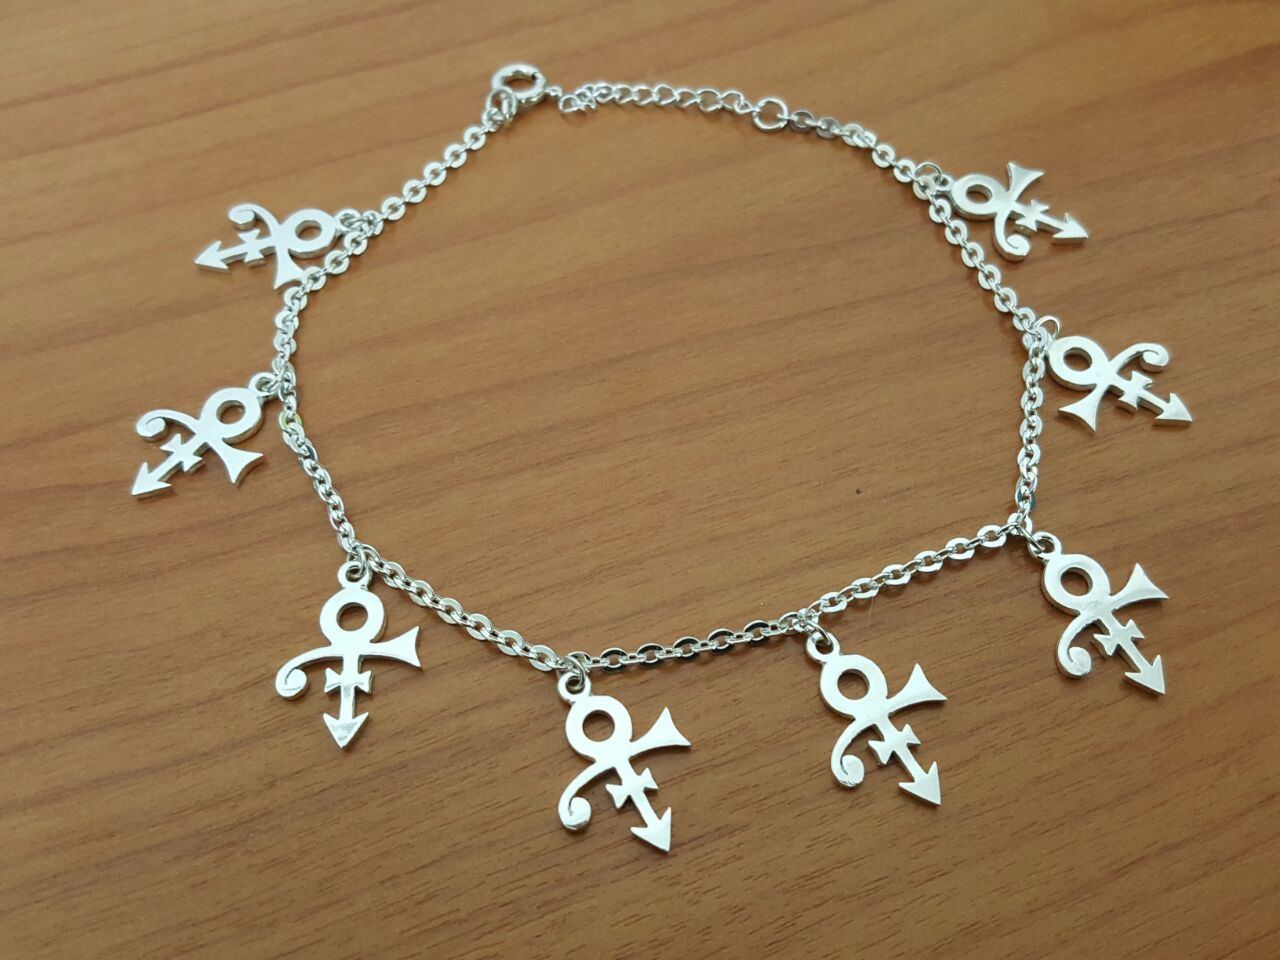 women jewelry chain adjustable hermane ankle product star charms ball licliz fine bracelet from foot for anklet sterling bracelets with wholesale silver